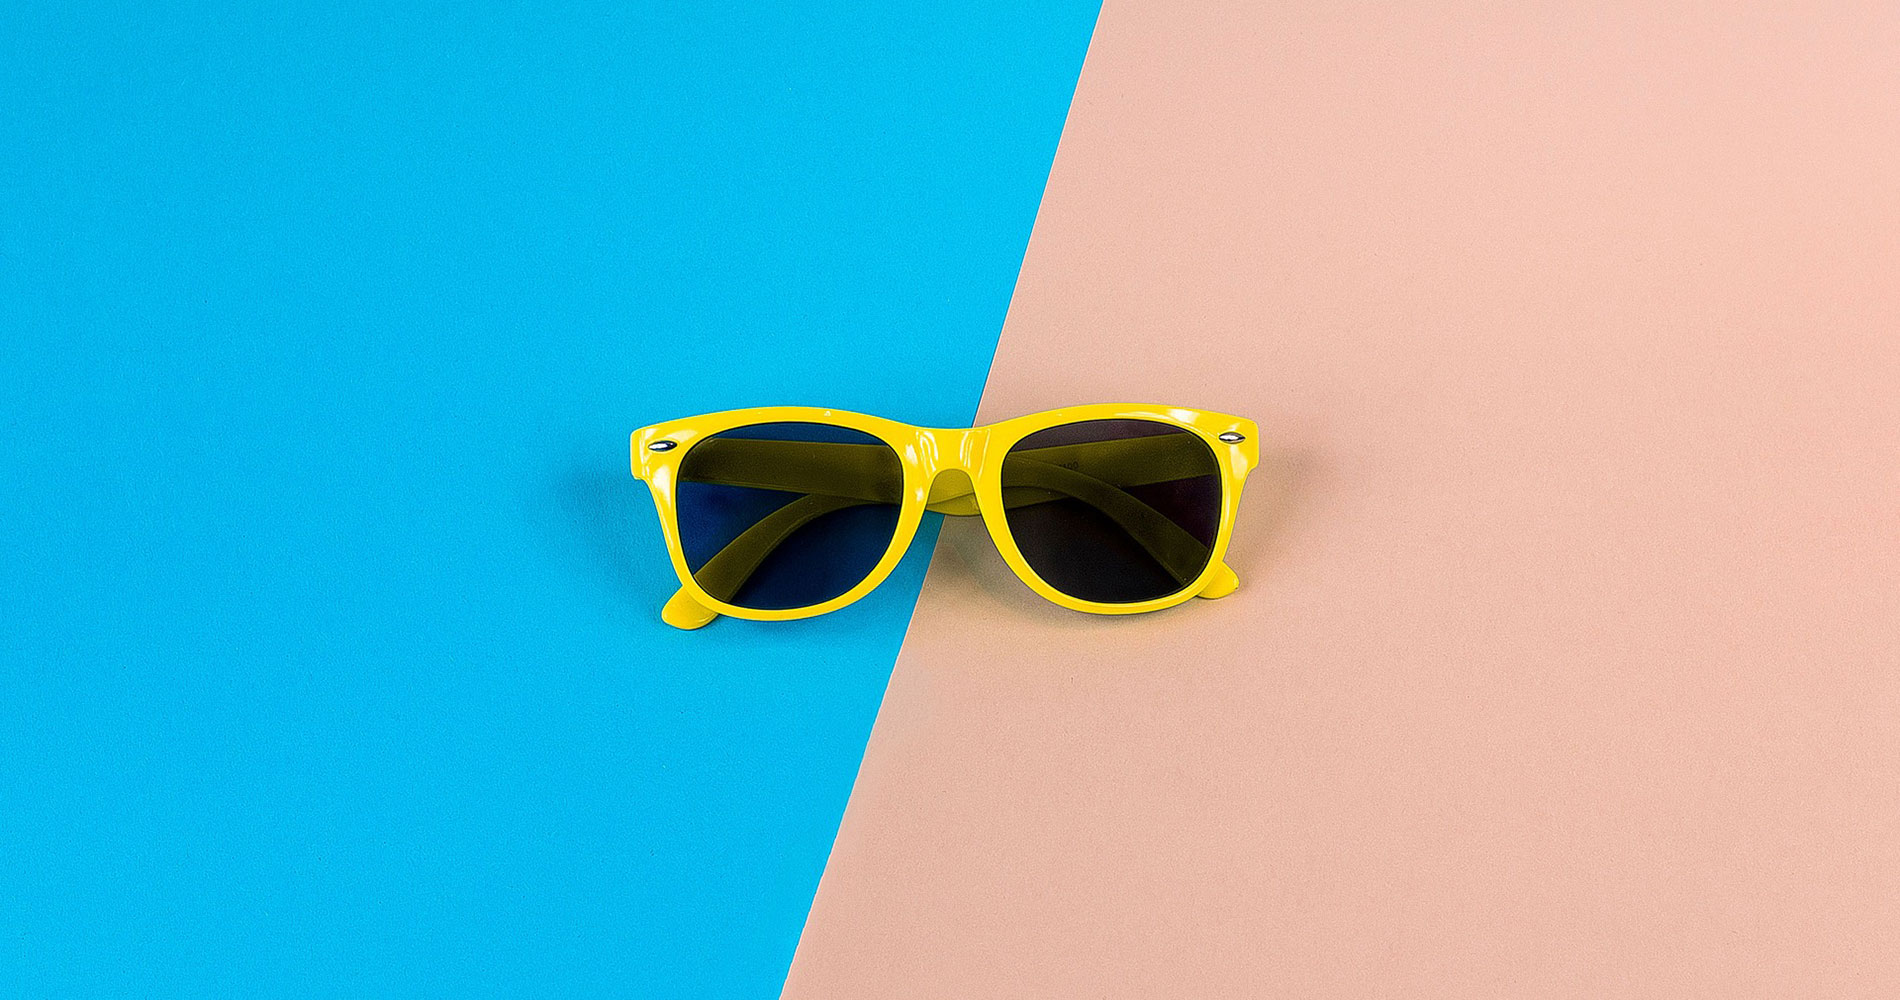 Yellow retro sunglasses on blue and pink background